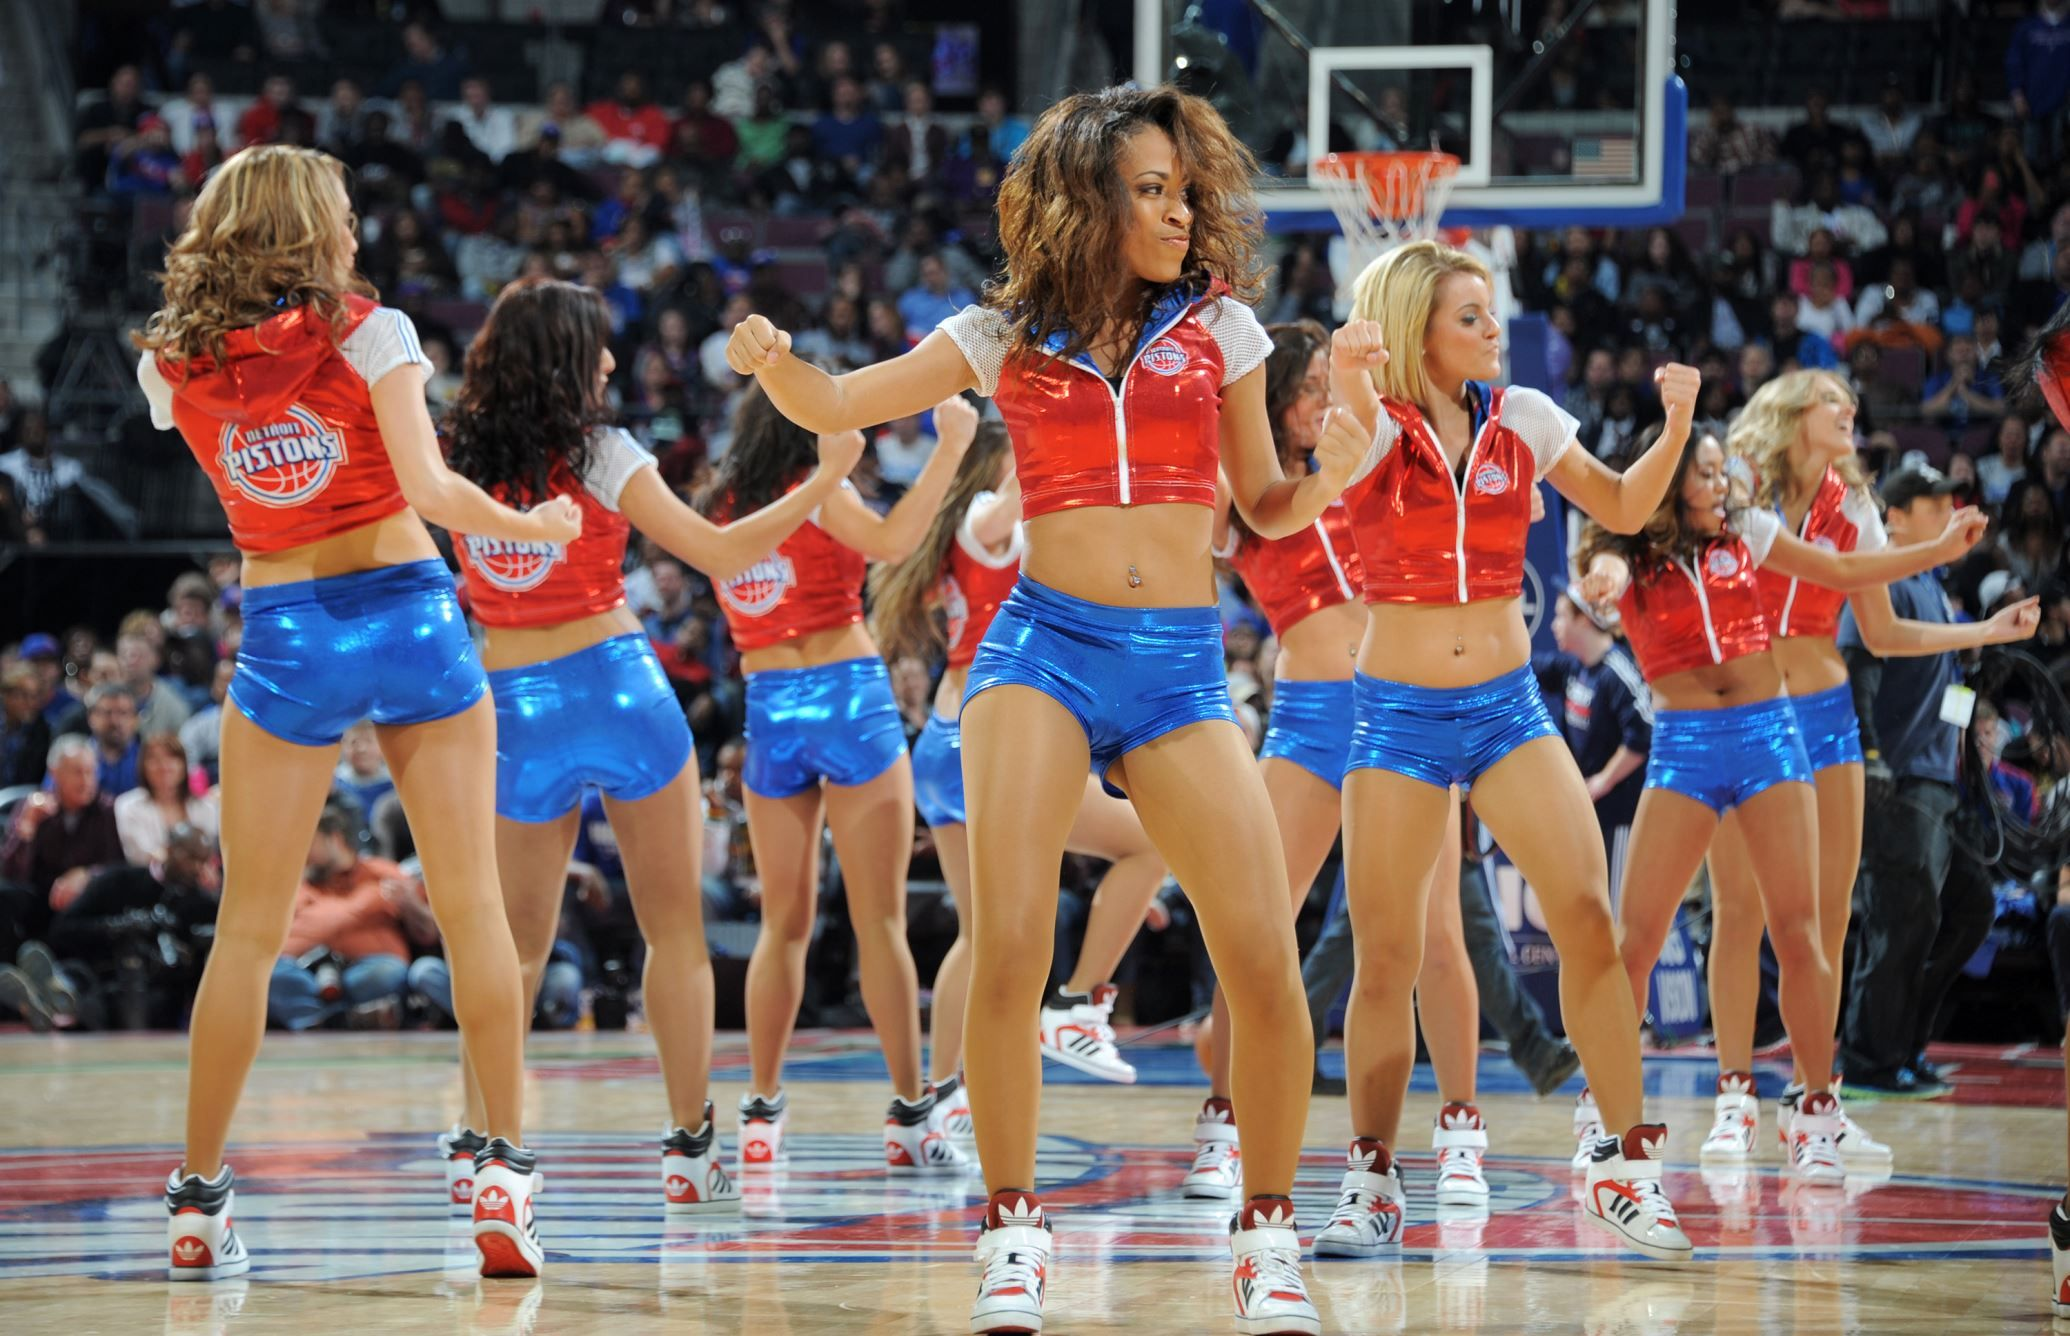 Nba cheerleaders 2013